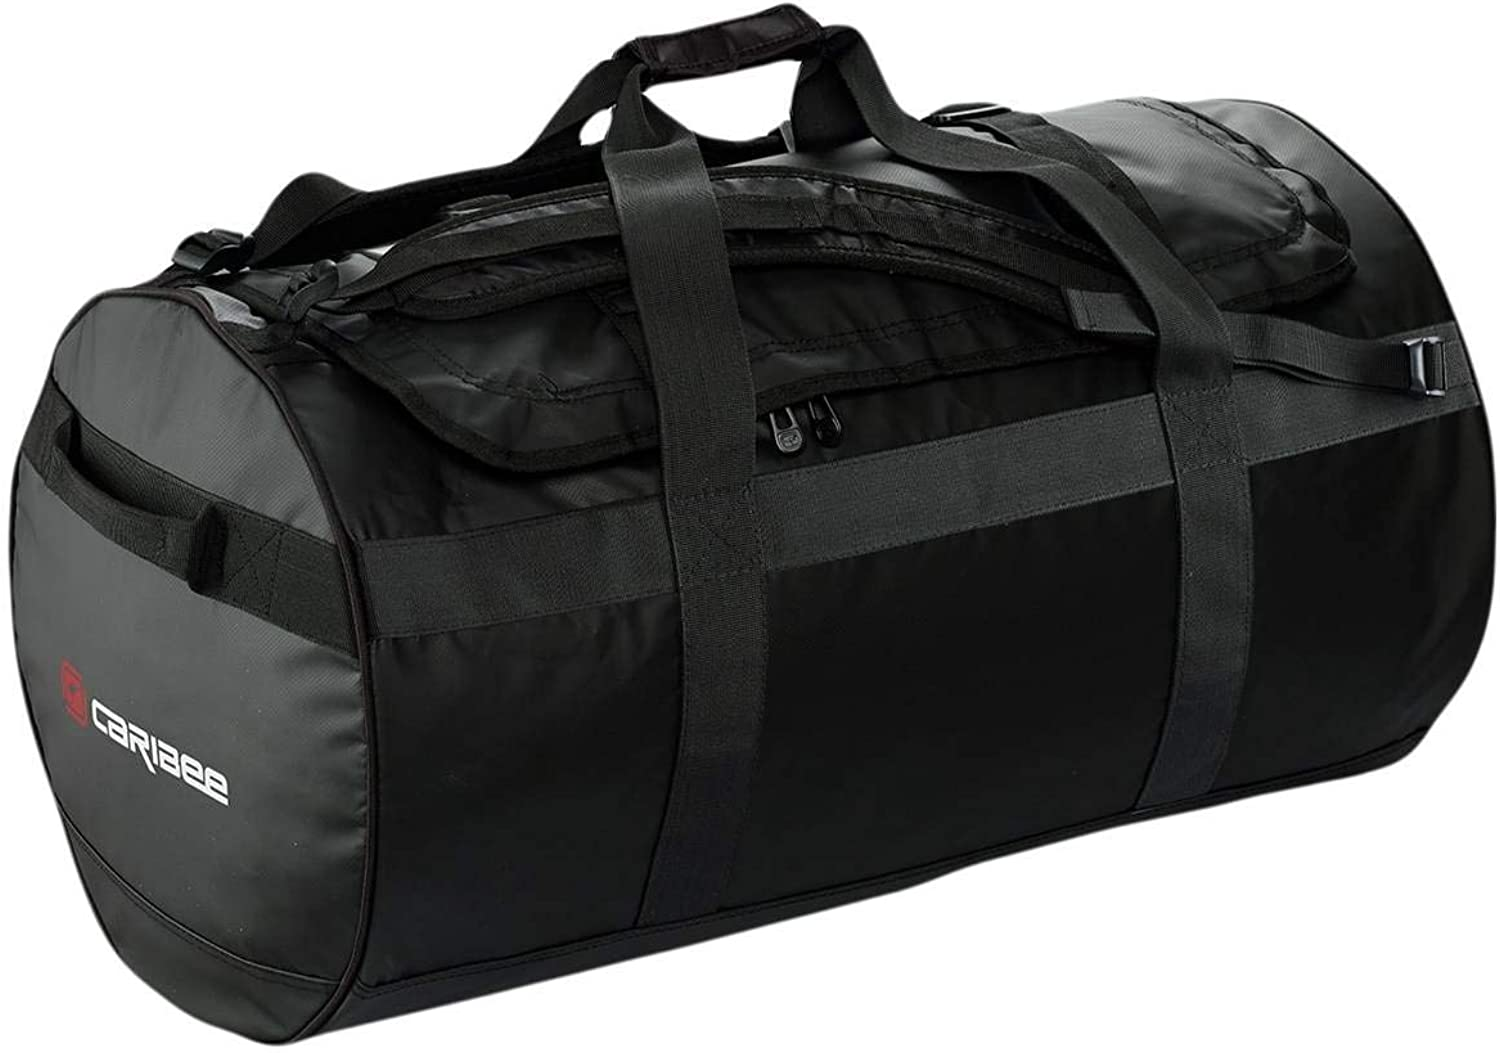 Caribee Kokoda 90L Duffle Bag - Black